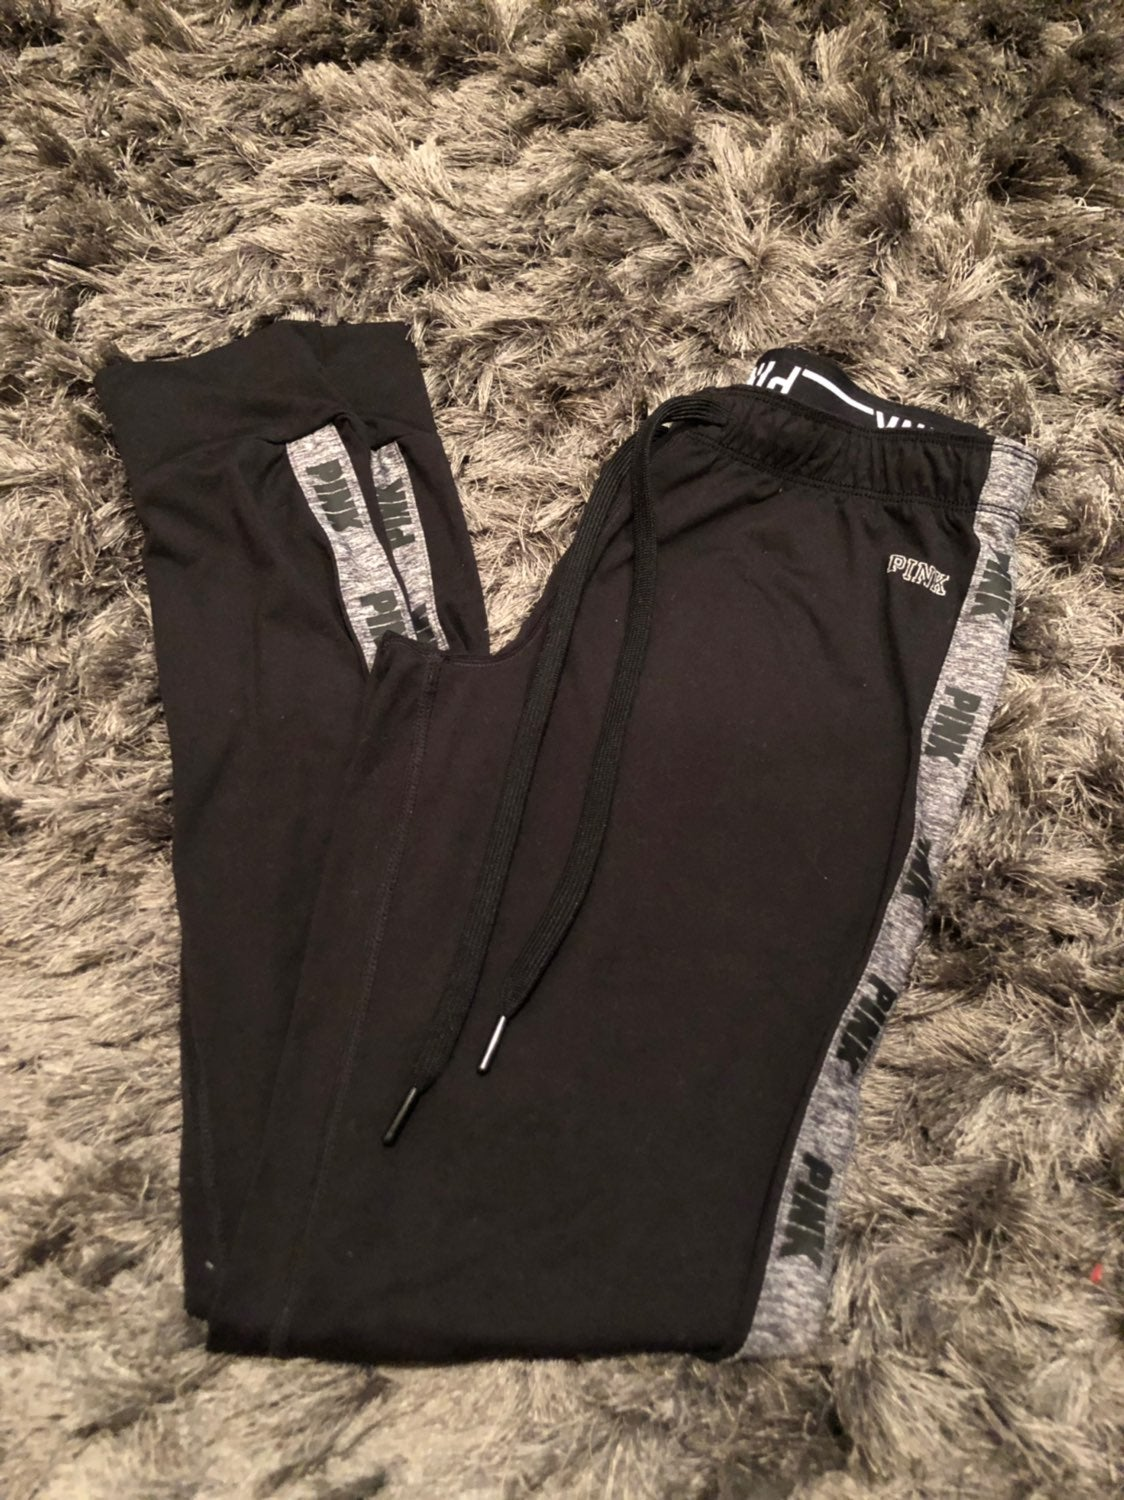 VS PINK ultimate leggings/pants